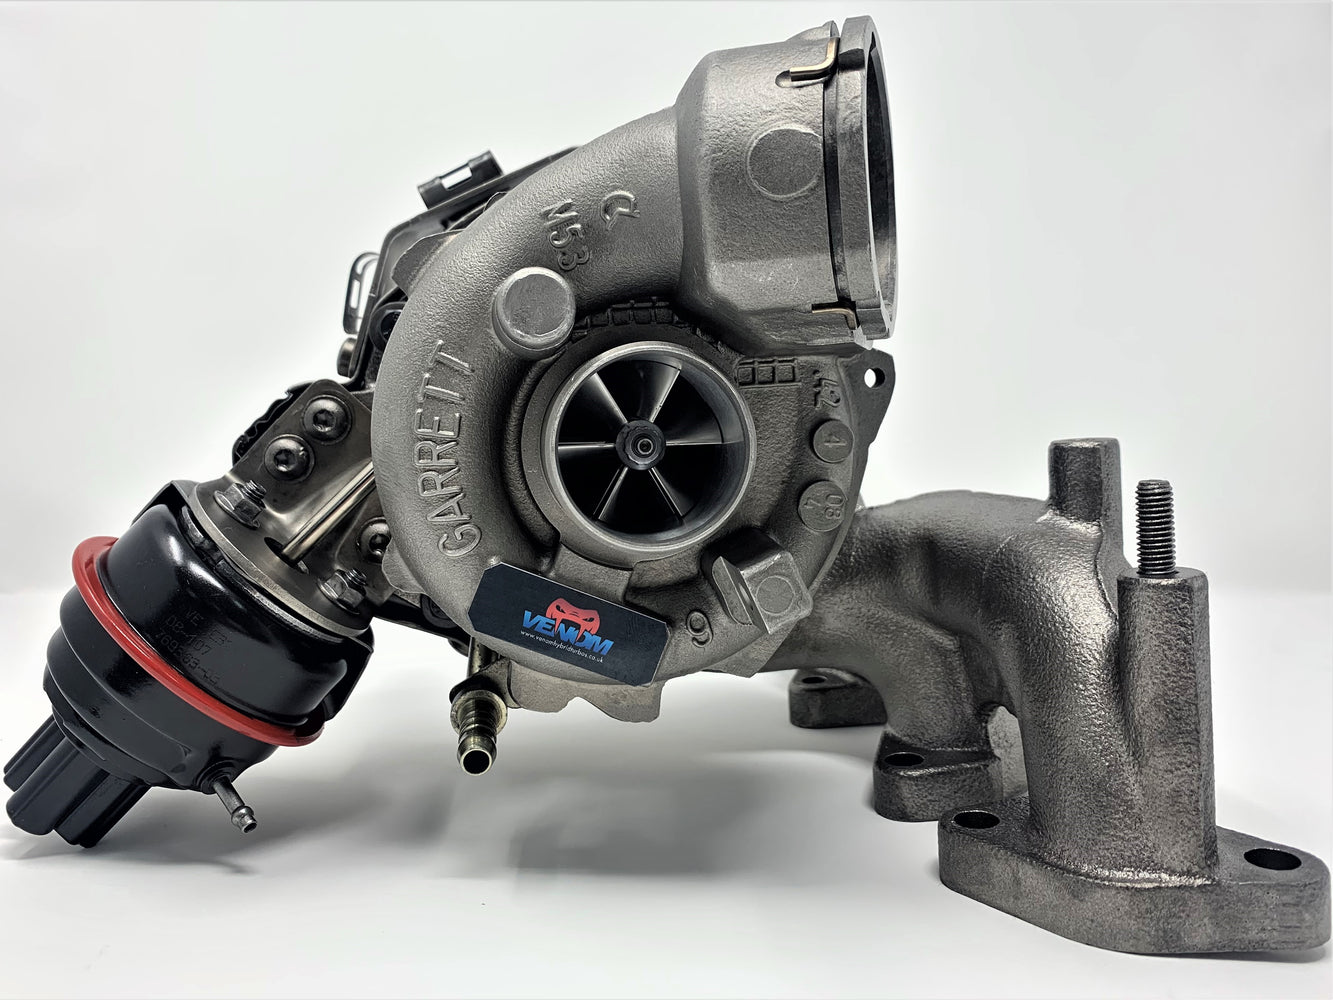 Mitsubishi Lancer 2.0 Di-D 138 bhp (07-12) Turbocharger (768652)